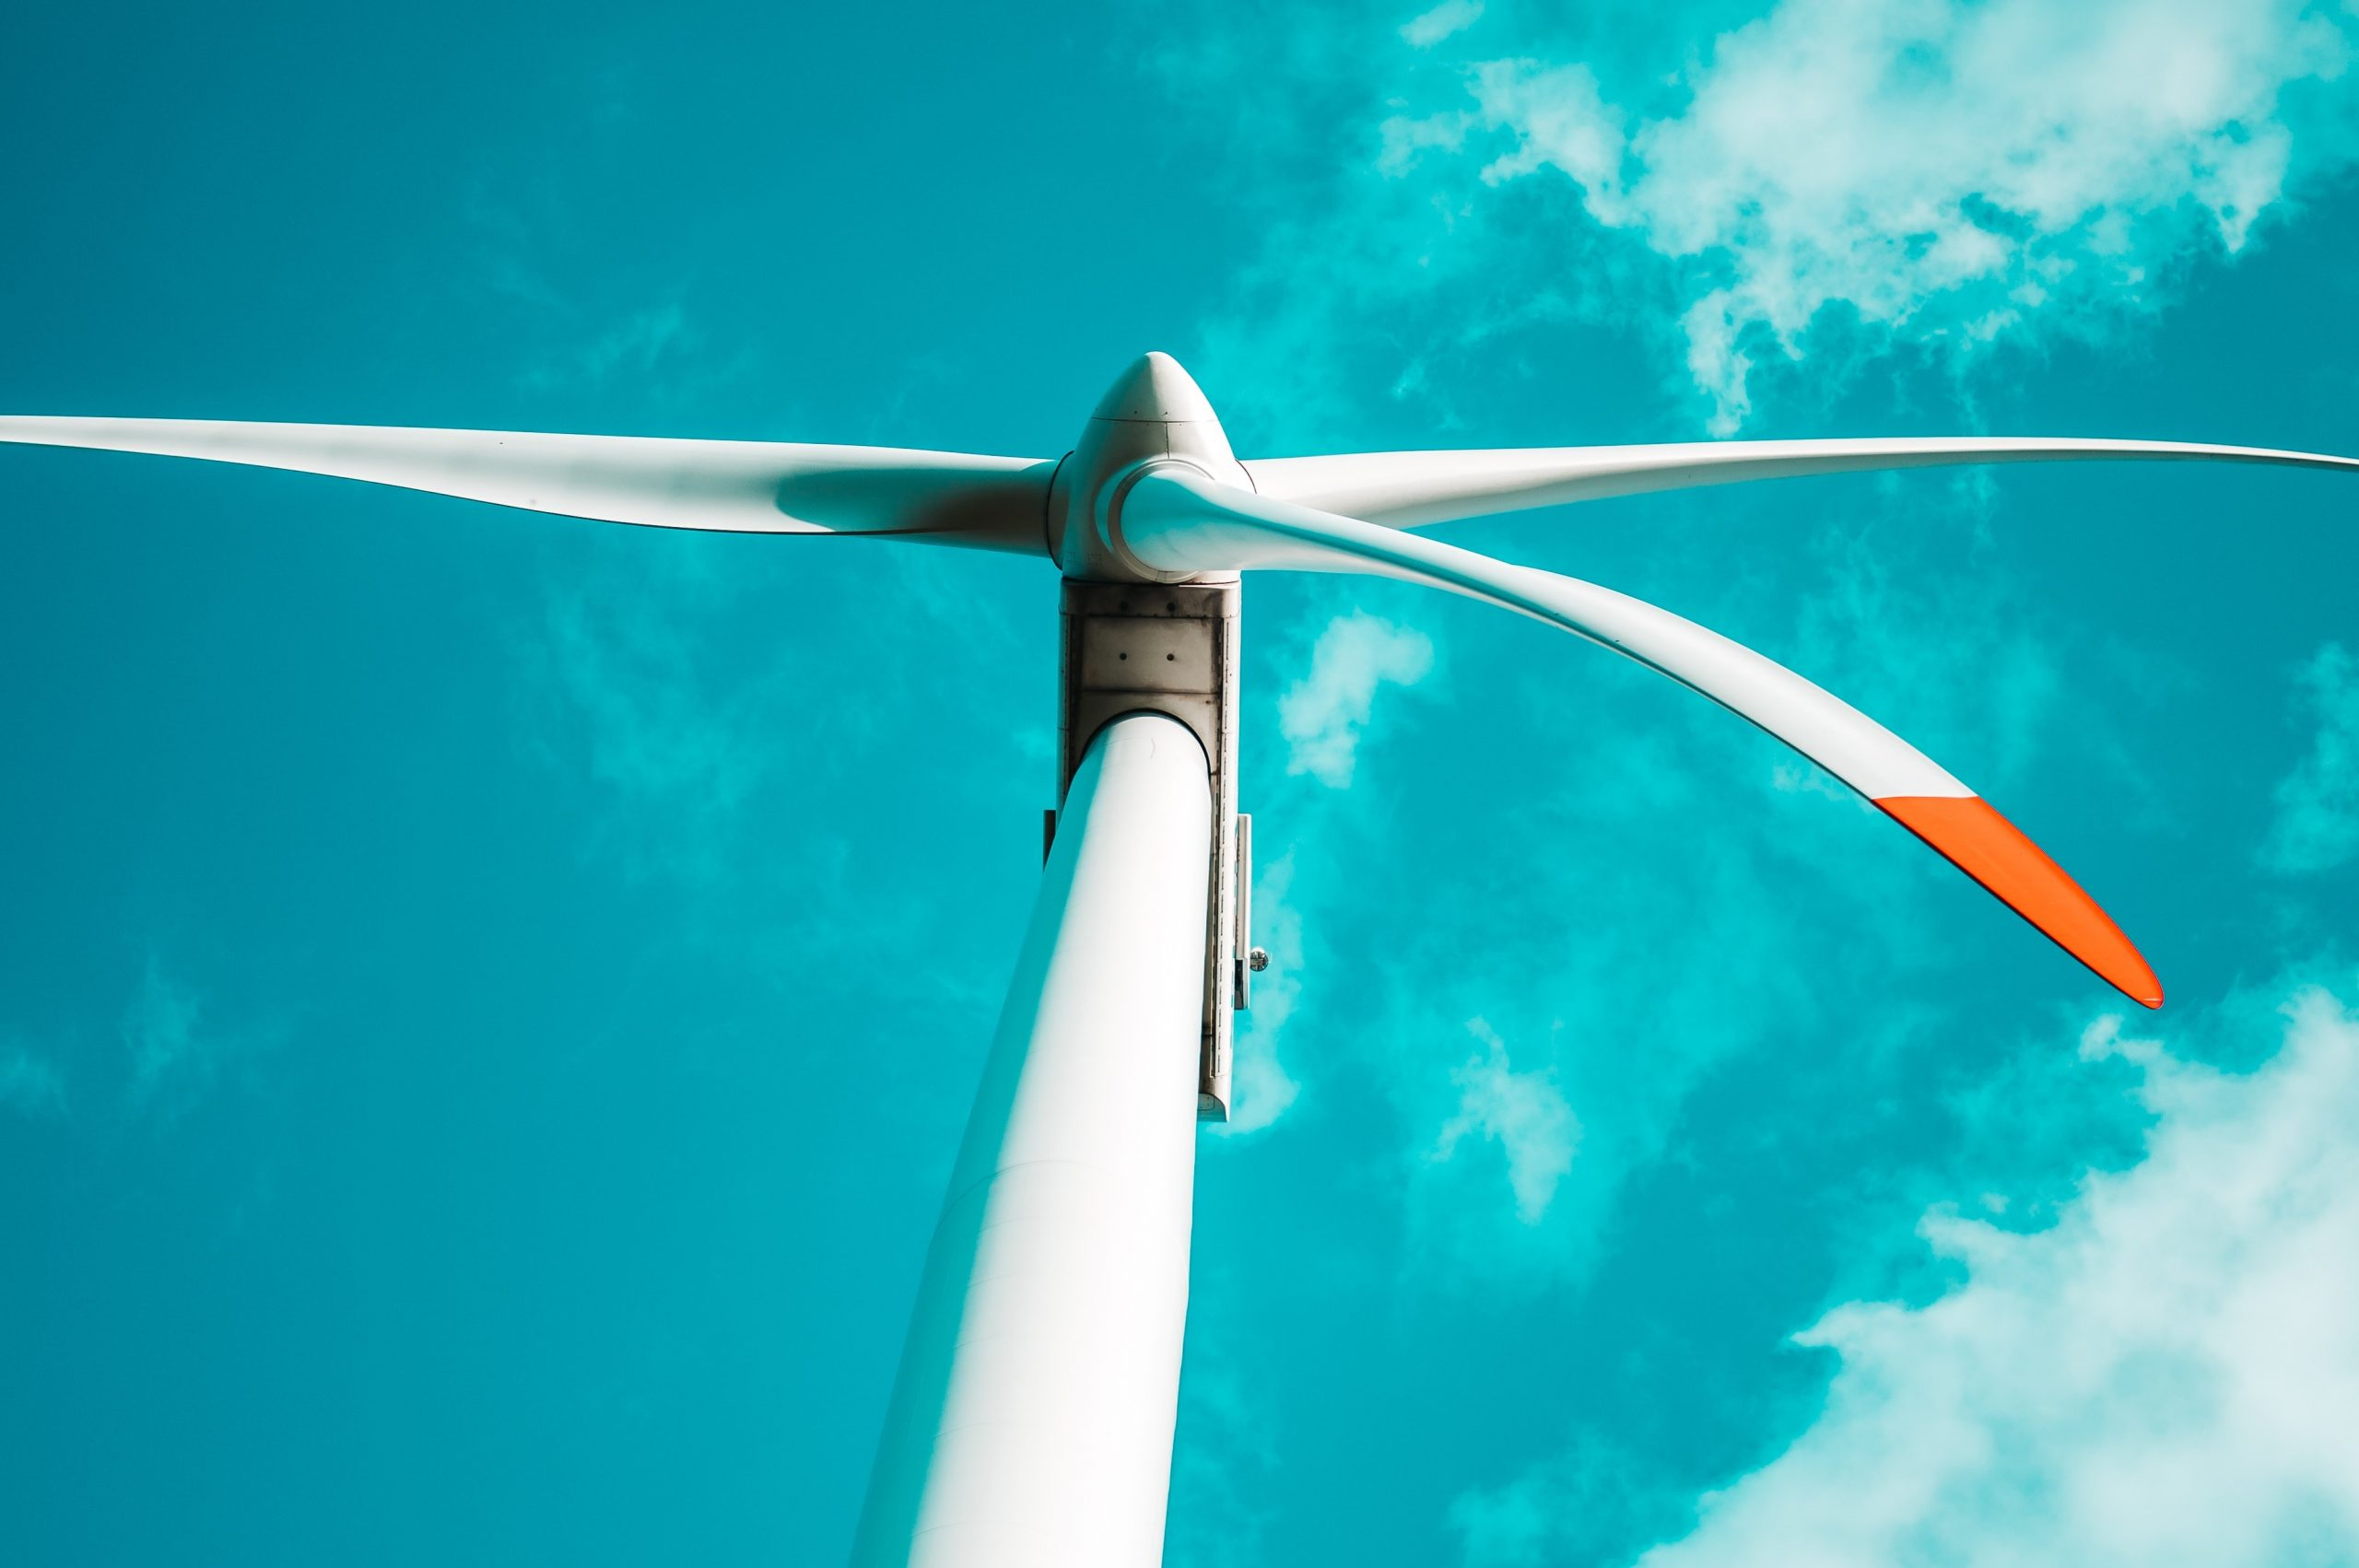 Supply chain management for wind engine production